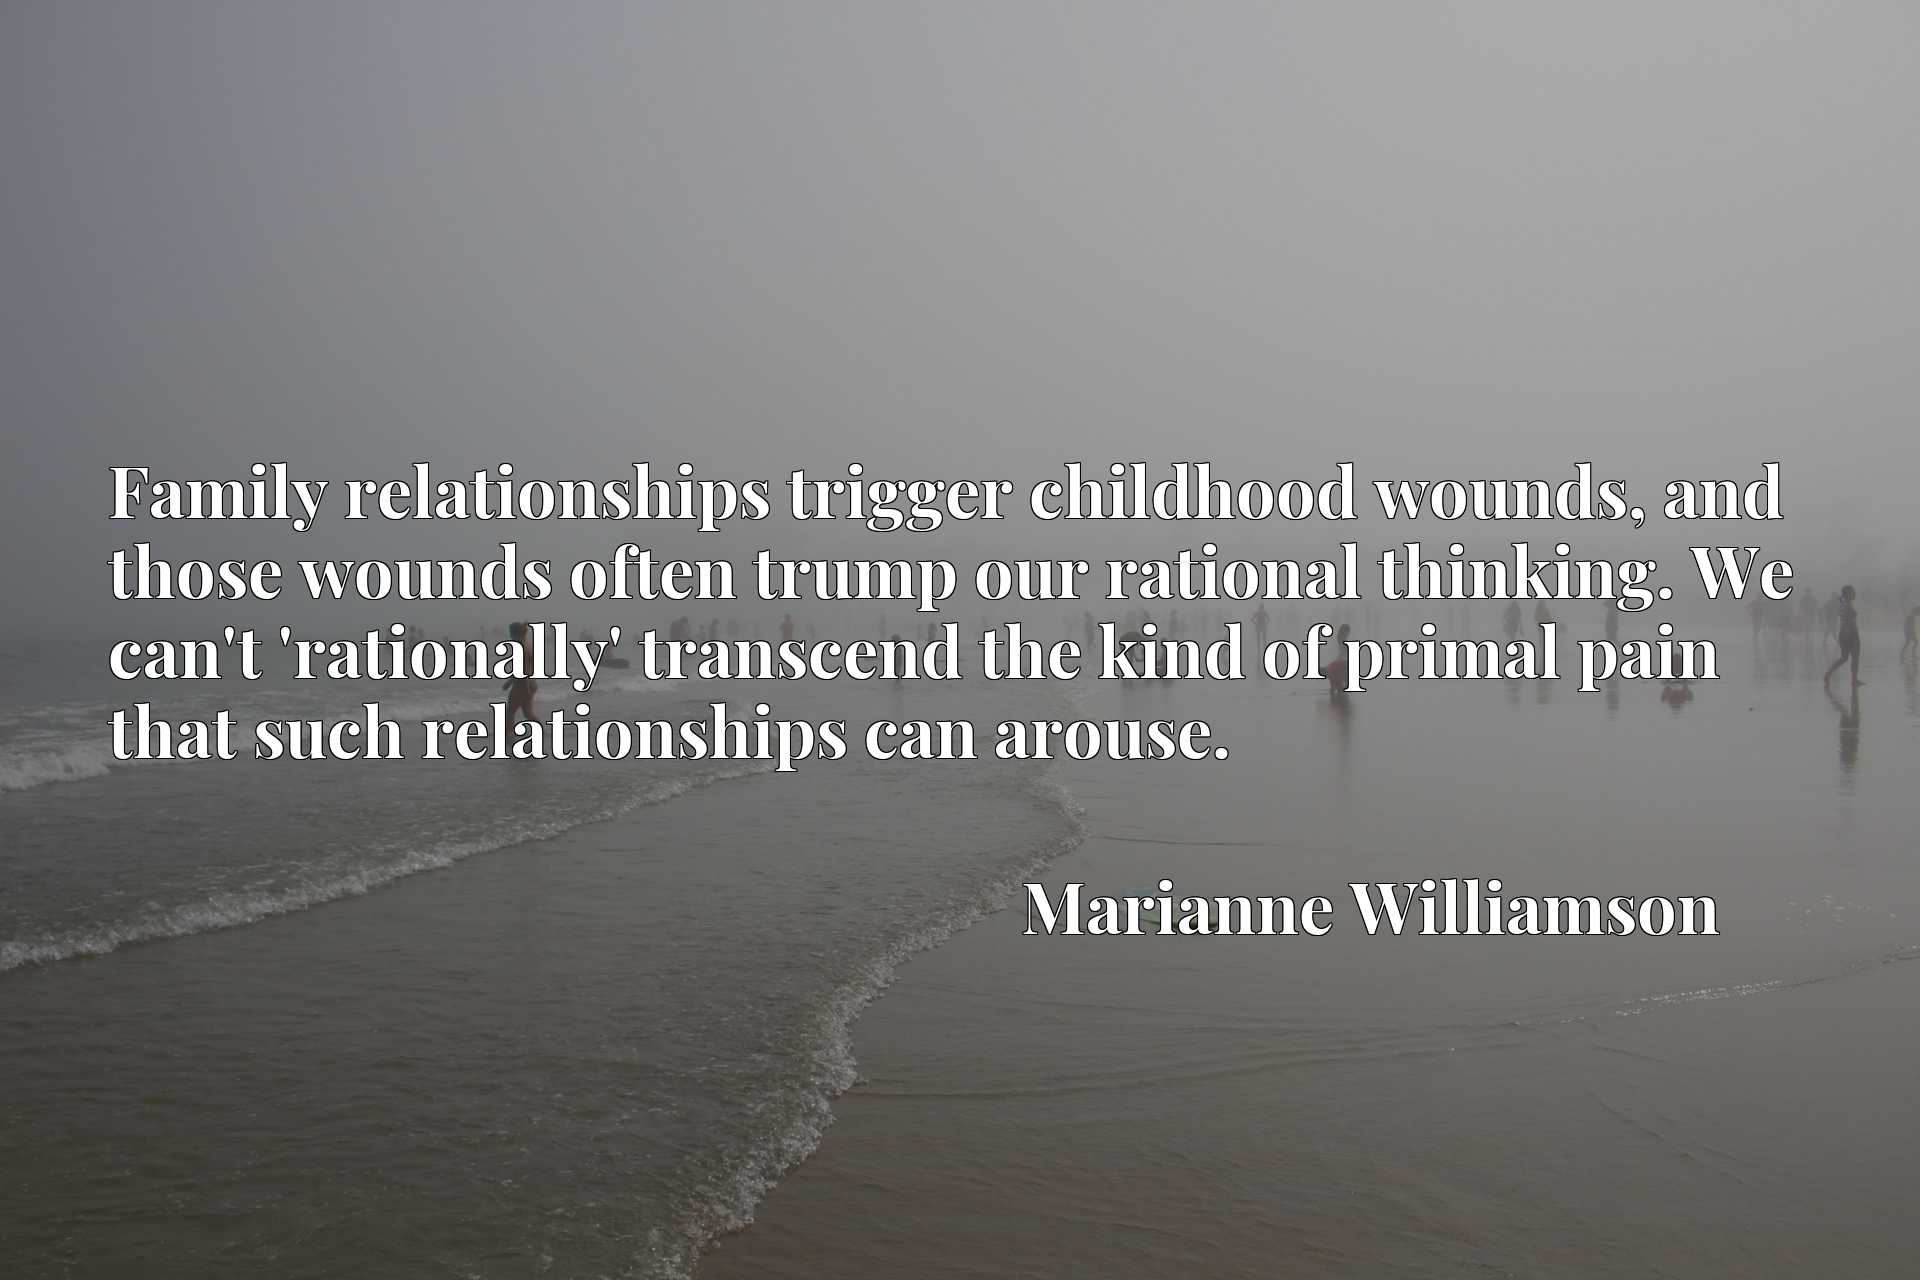 Family relationships trigger childhood wounds, and those wounds often trump our rational thinking. We can't 'rationally' transcend the kind of primal pain that such relationships can arouse.